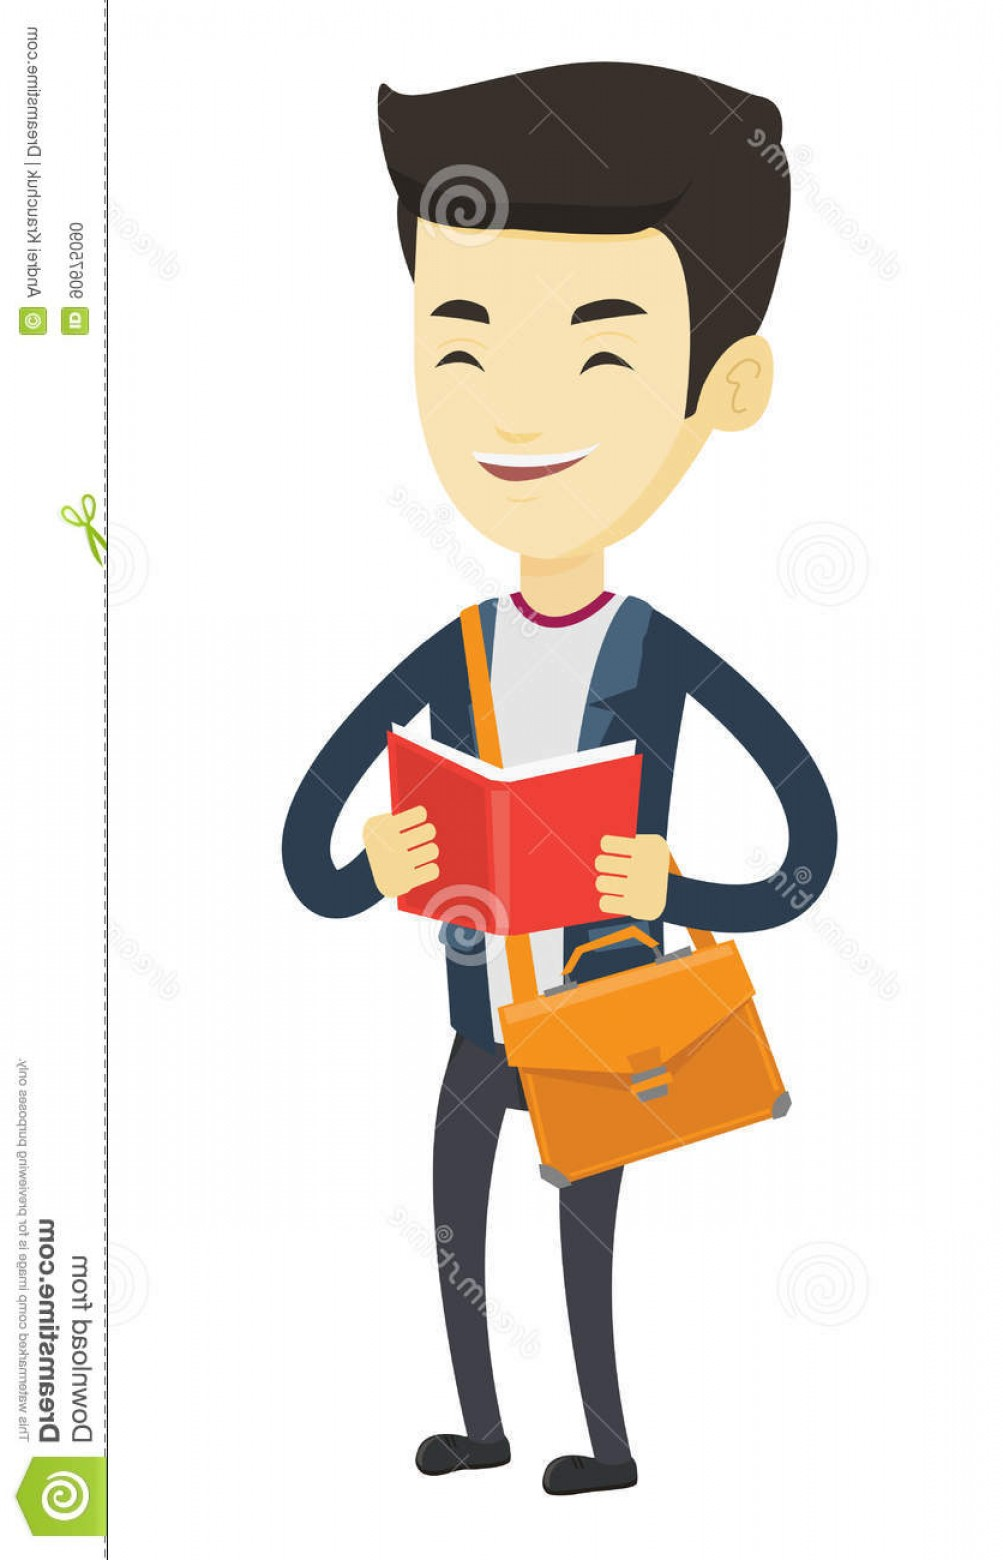 Asian Student Vector: Stock Illustration Student Reading Book Vector Illustration Asian Happy Preparing Exam Standing Hands Education Image